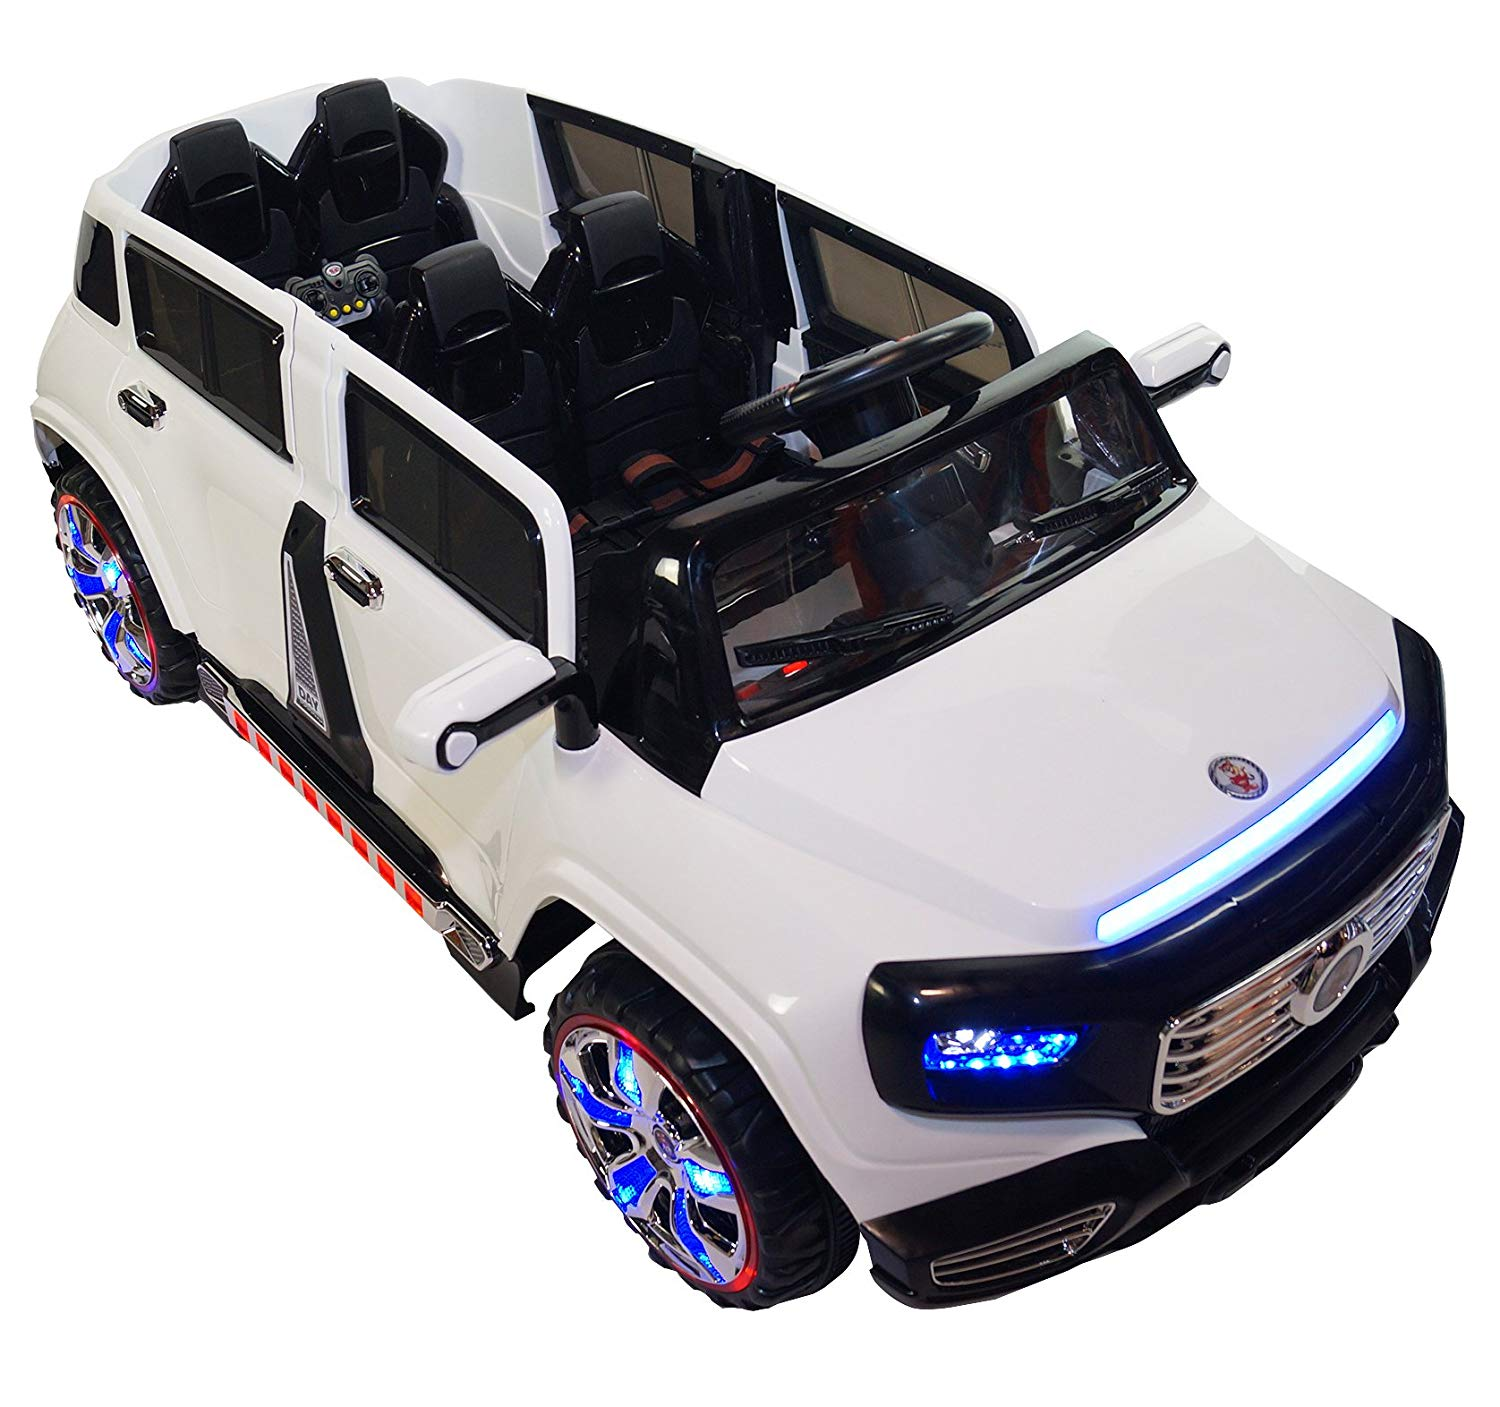 Two-Seater 4-Door Premium Ride On Electric Toy Car For ...